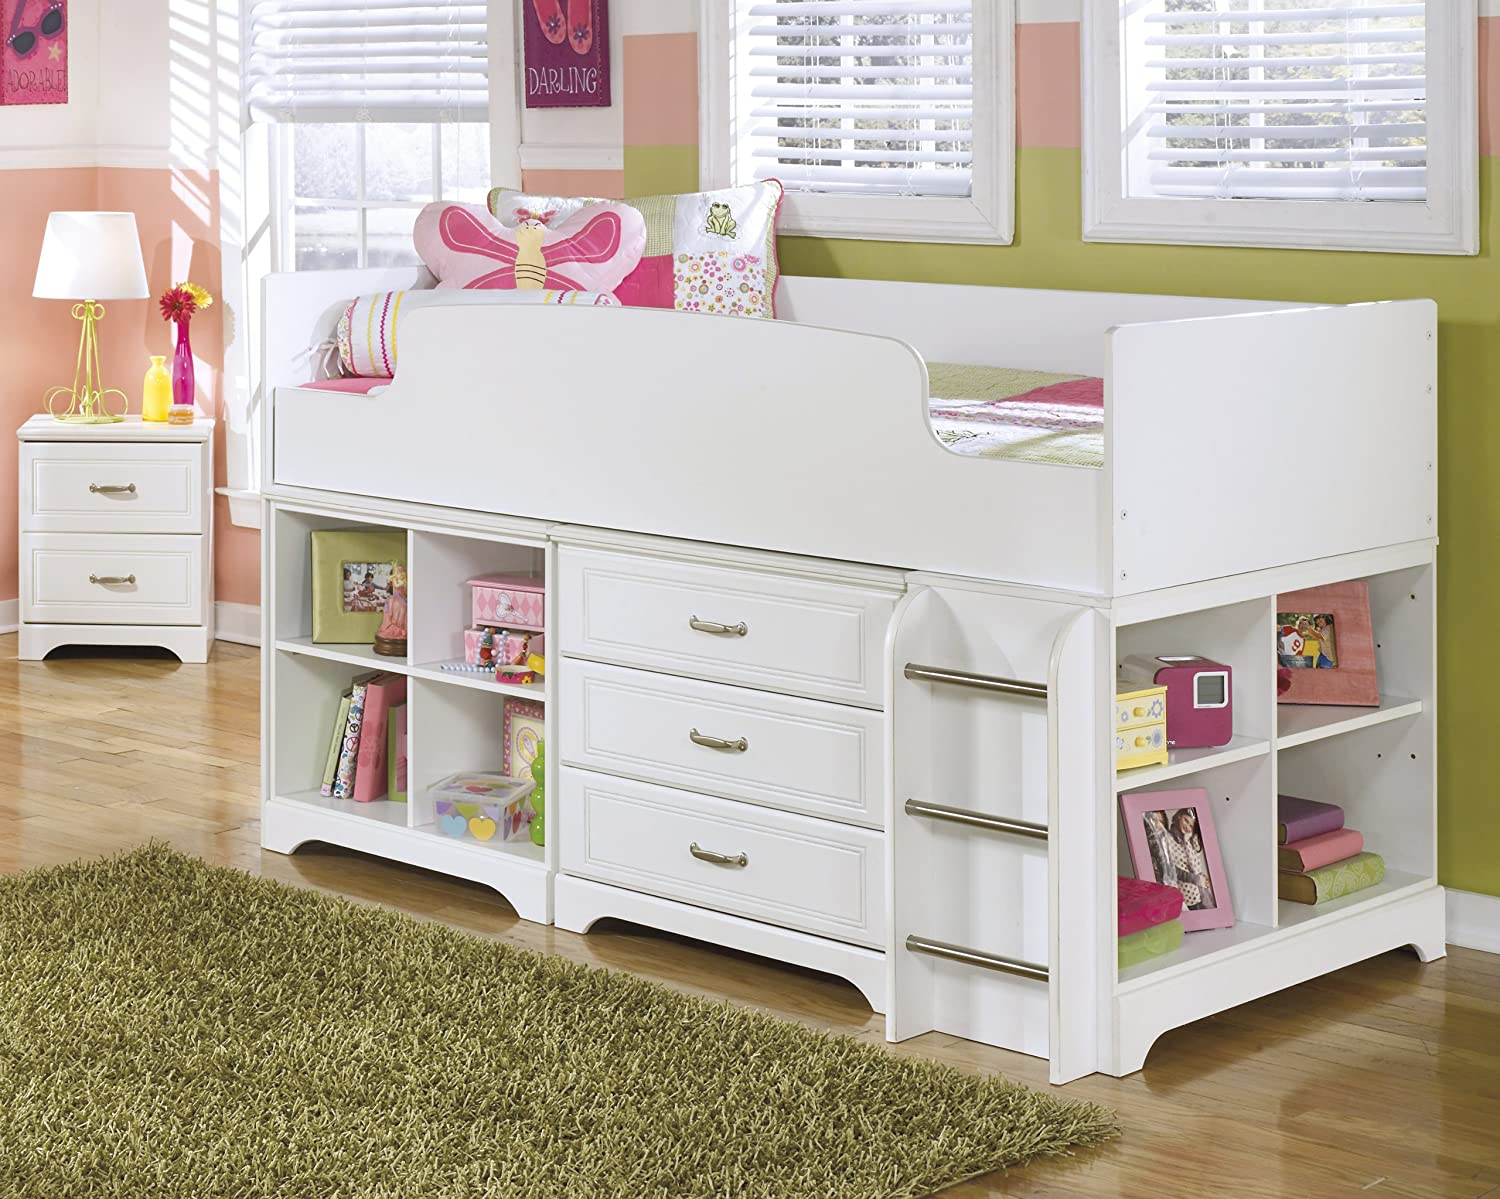 mattresses captain storage cabin drawers captains bedframe asp p solid single with kids bed finish sprung beds underbed wooden x pine waxed